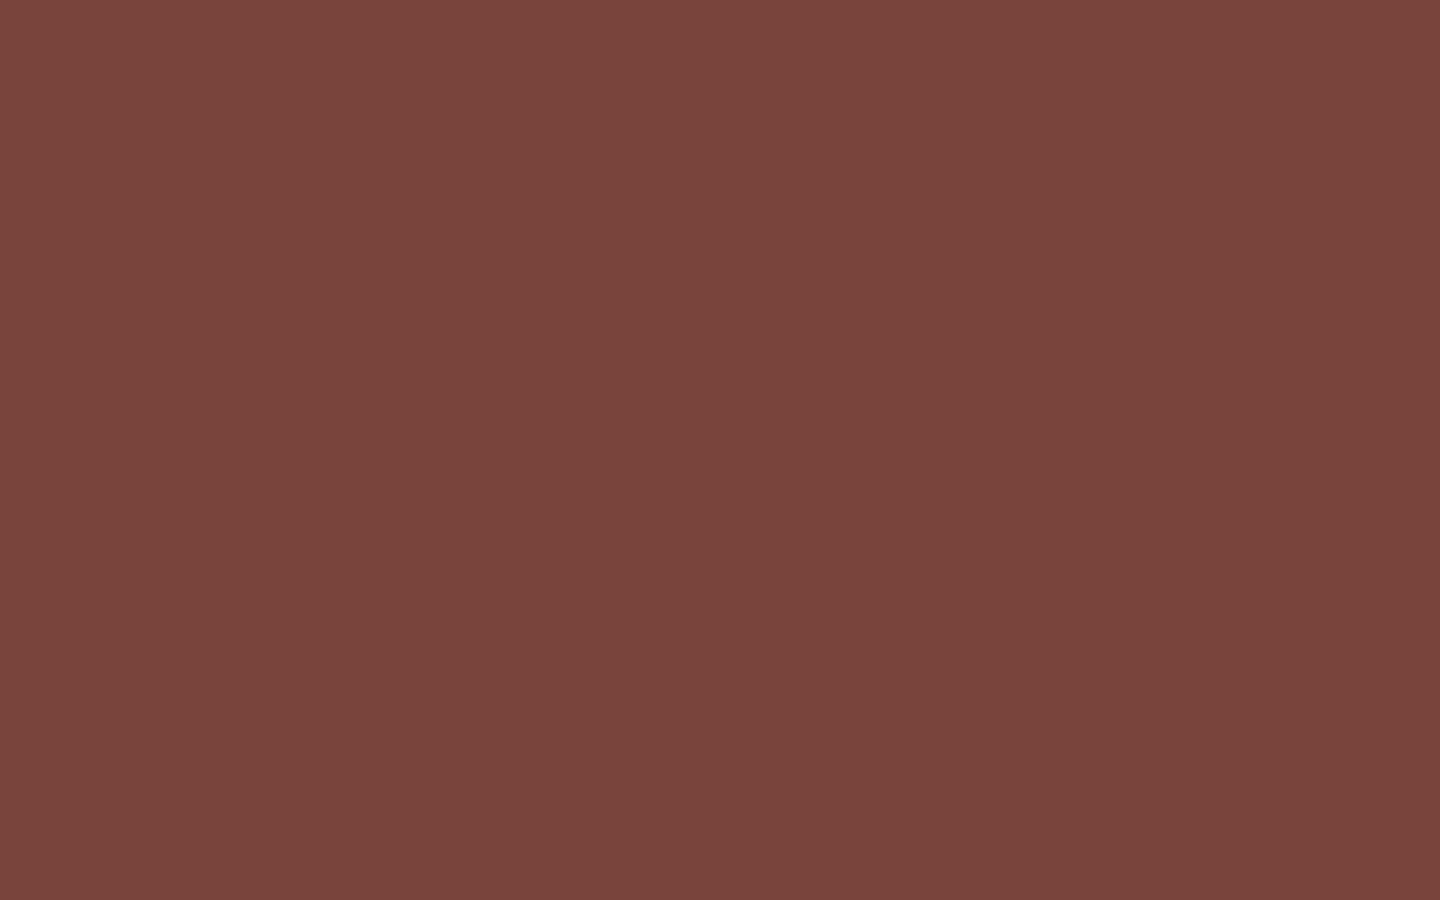 1440x900 Medium Tuscan Red Solid Color Background